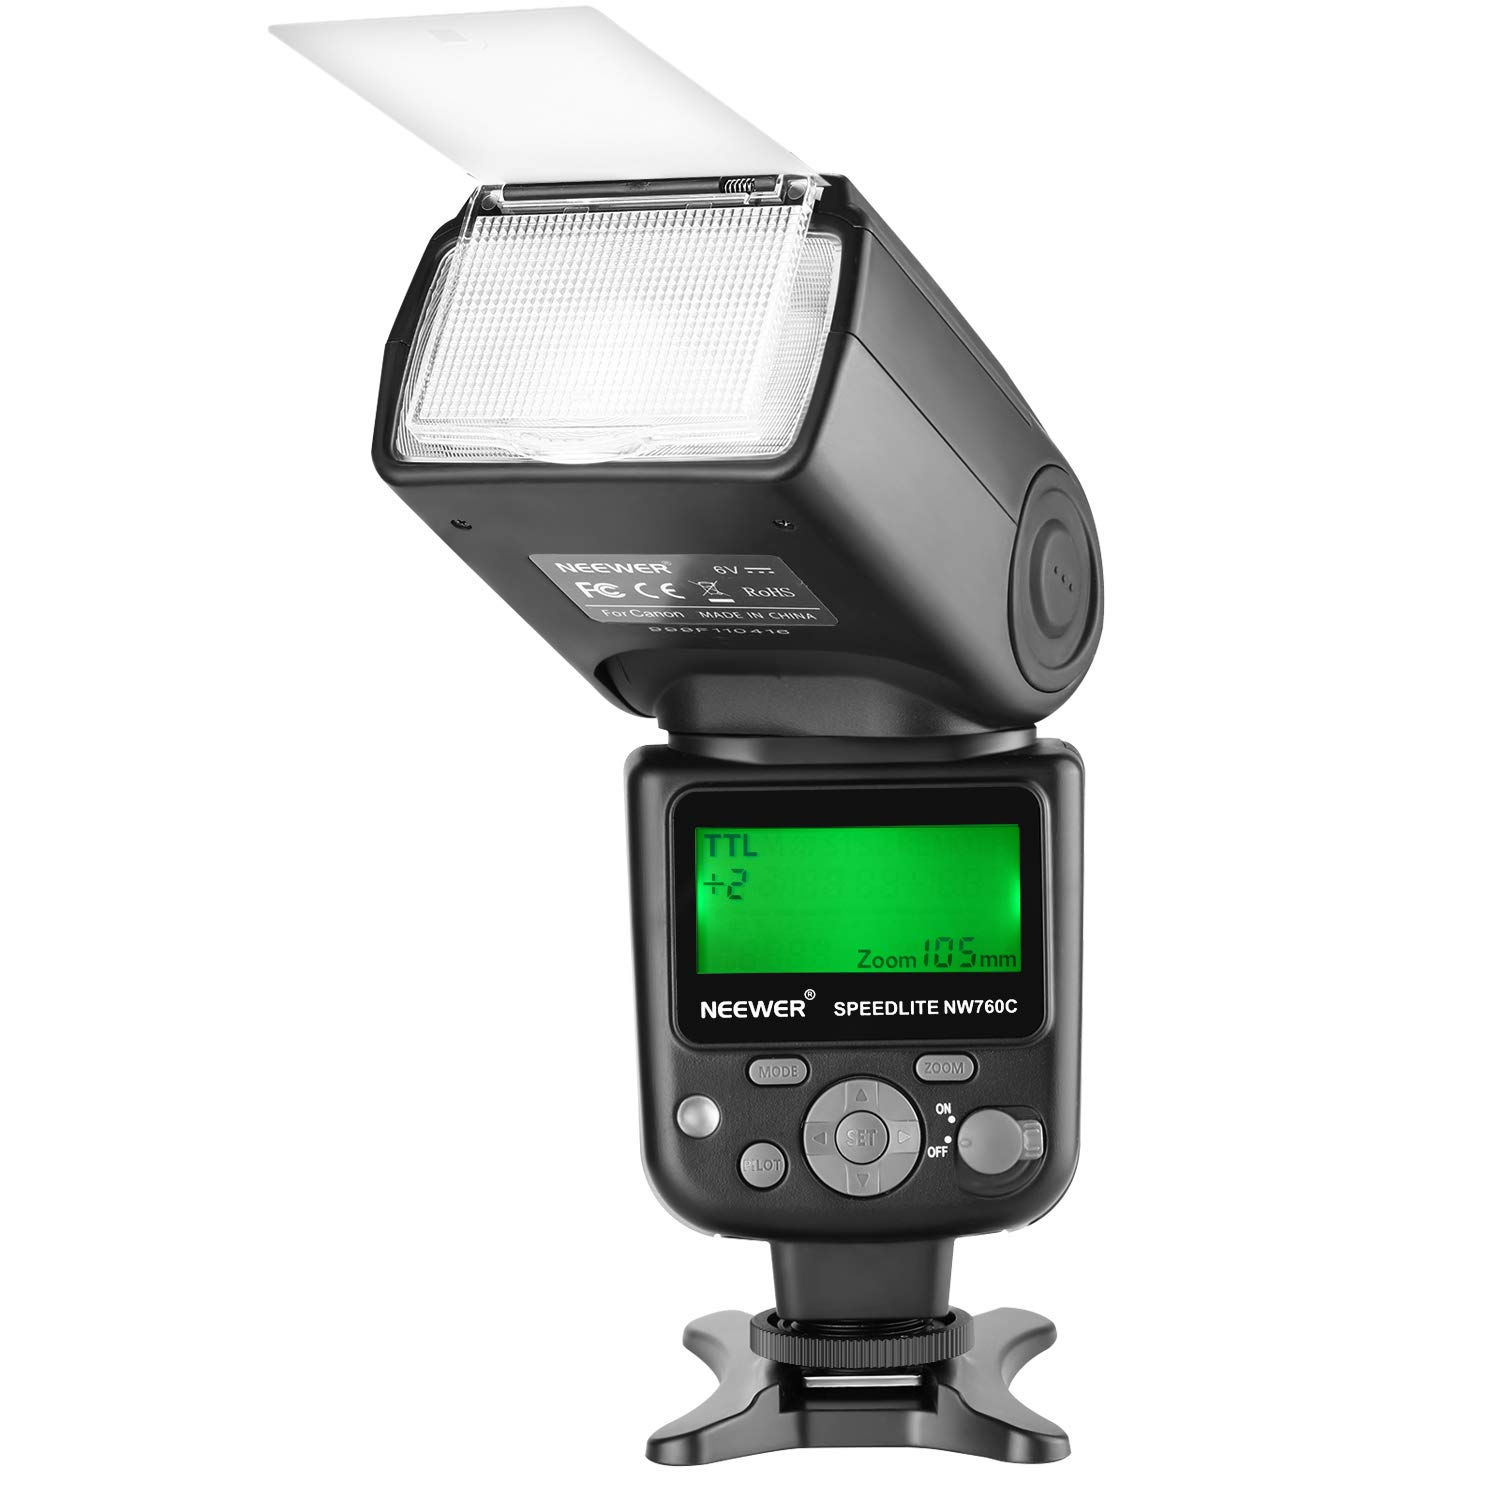 Neewer NW760 Remote TTL Flash Speedlite with LCD Display for Canon 7D Mark II, 5D Mark II III IV III IV 1300D 1200D 1100D 750D 700D 650D 600D 550D 500D 100D 80D 70D 60D and Other Canon DSLR Cameras by Neewer